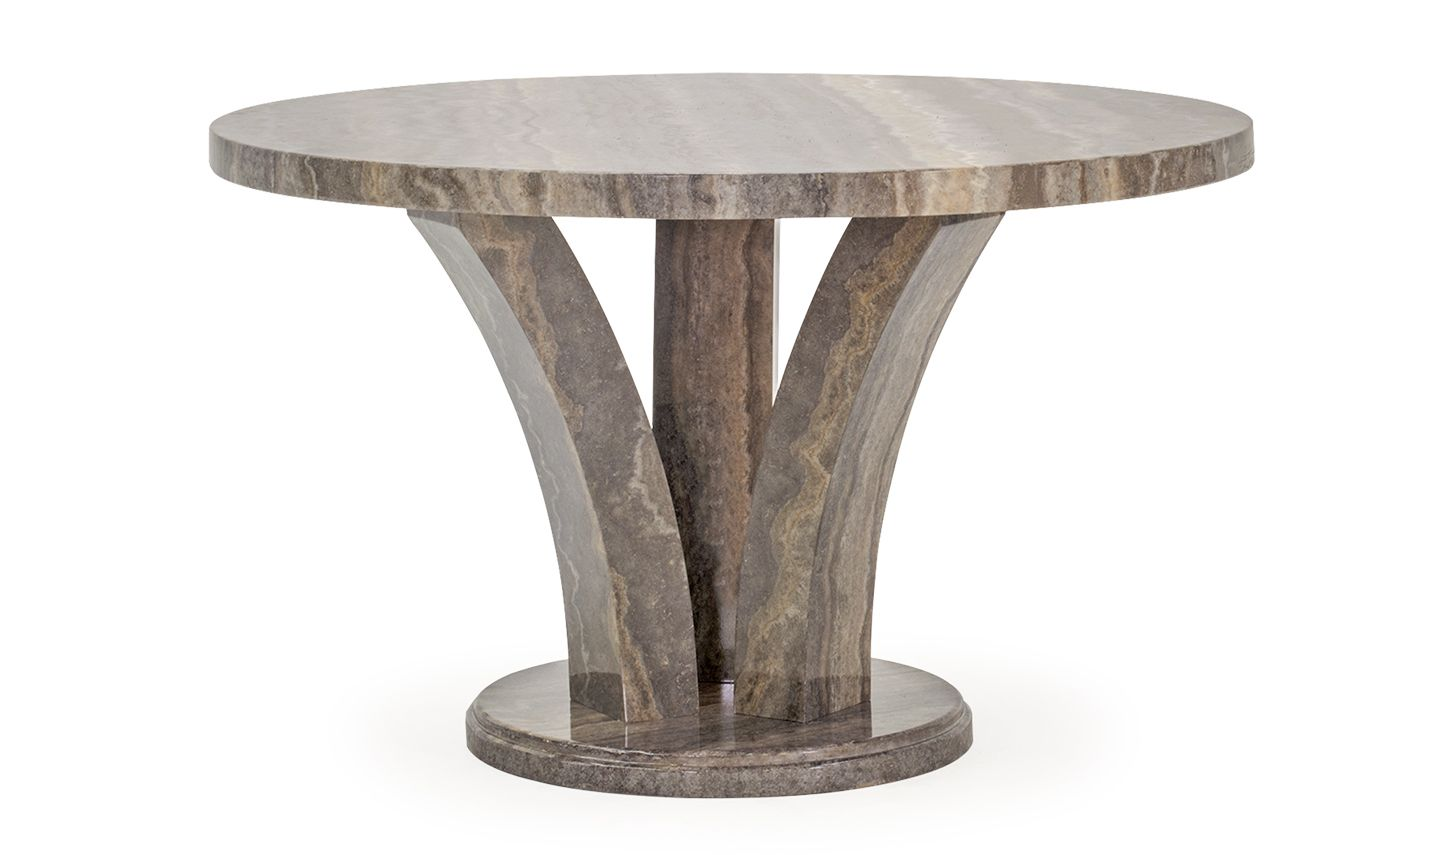 Aquila High Gloss Pearl Grey Marble Round Dining Table 18VD48